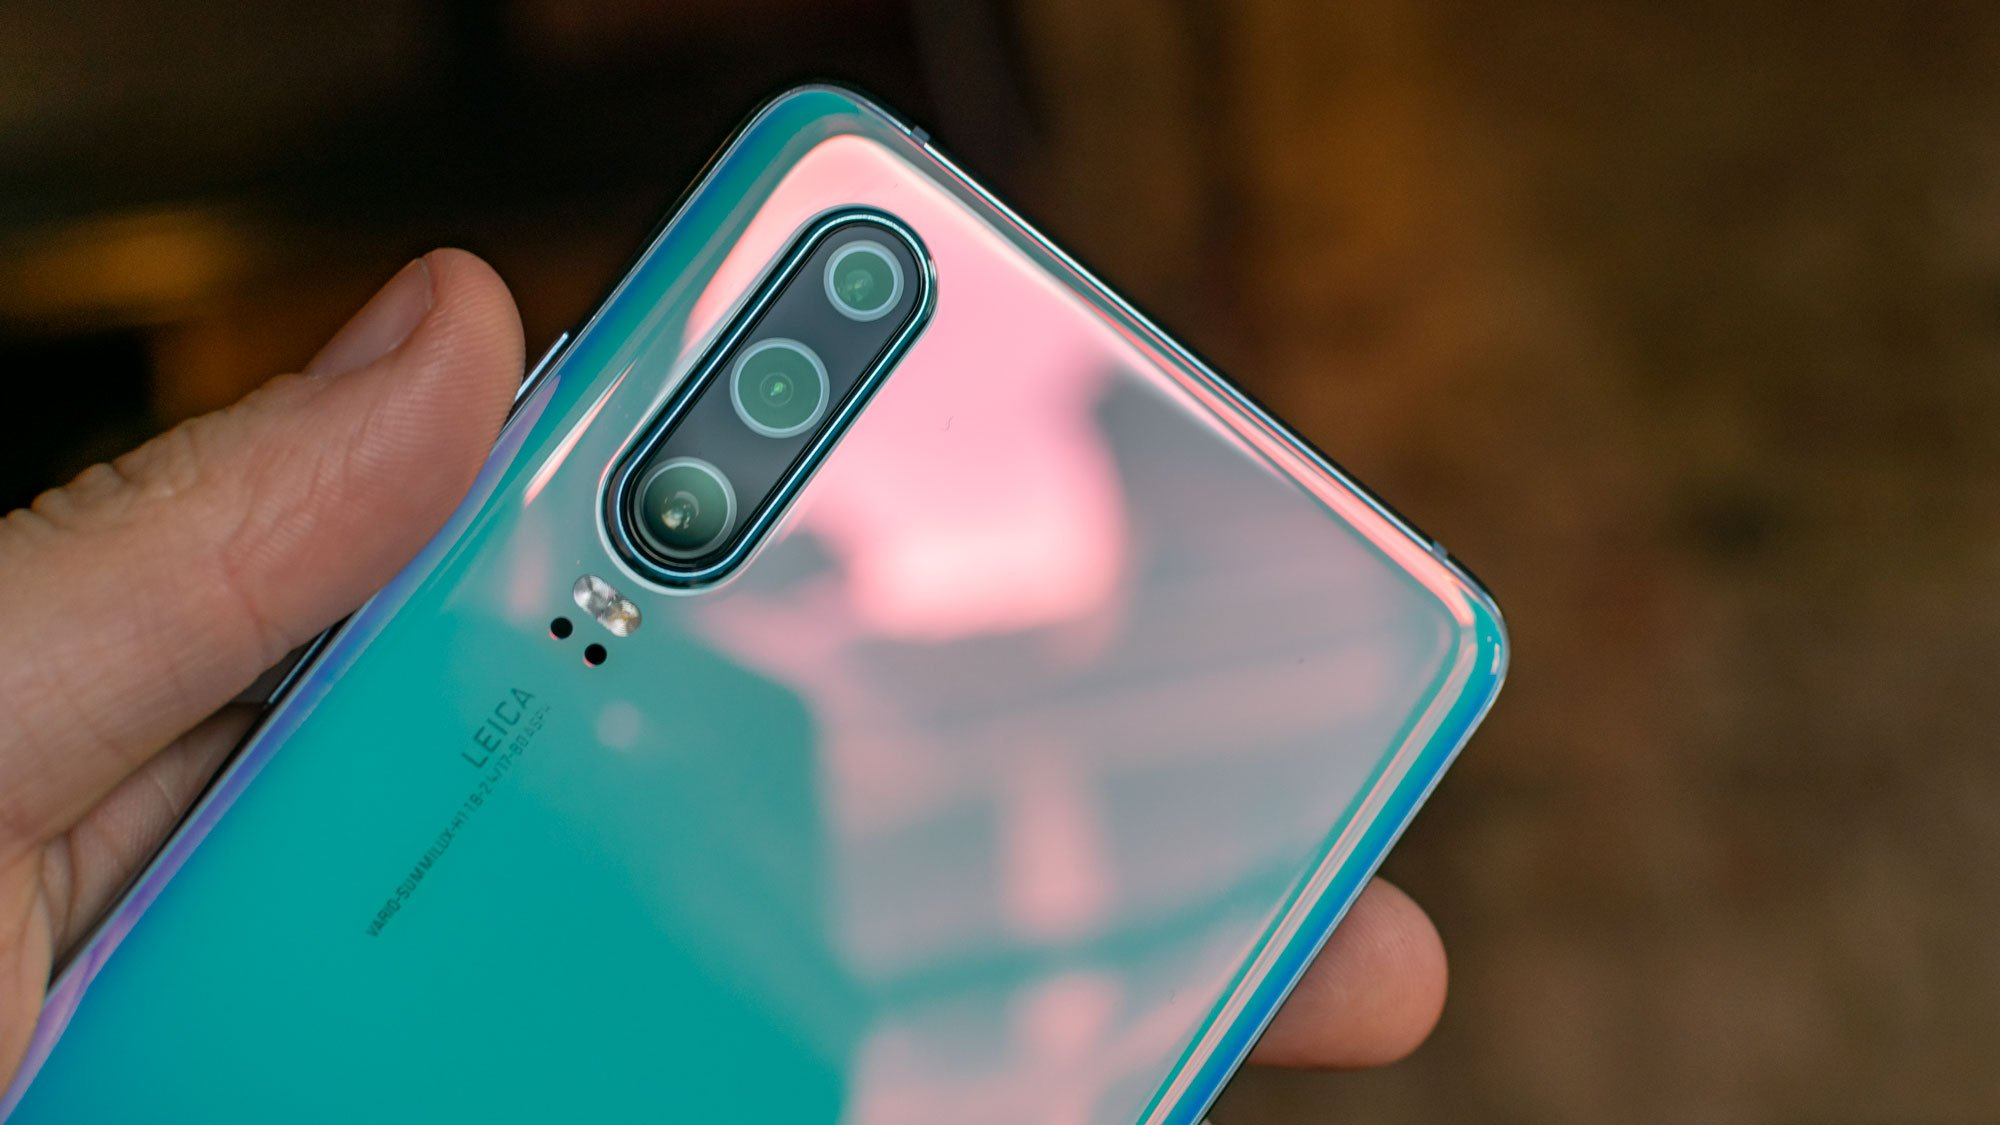 With a Leica triple camera system it's easy to see why the Huawei P30 is so popular